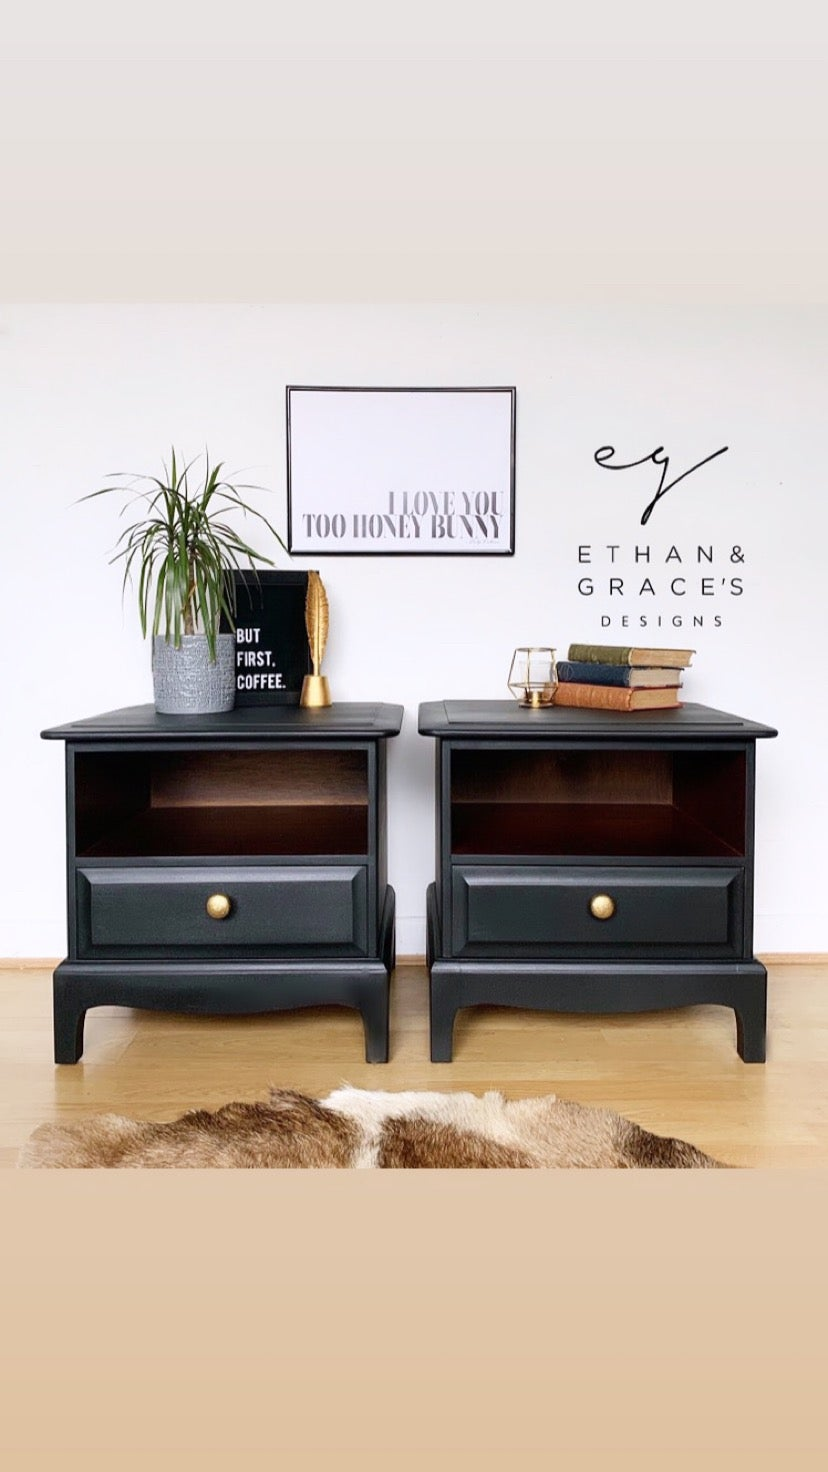 Image of A pair of black stag mahogany bedside tables.